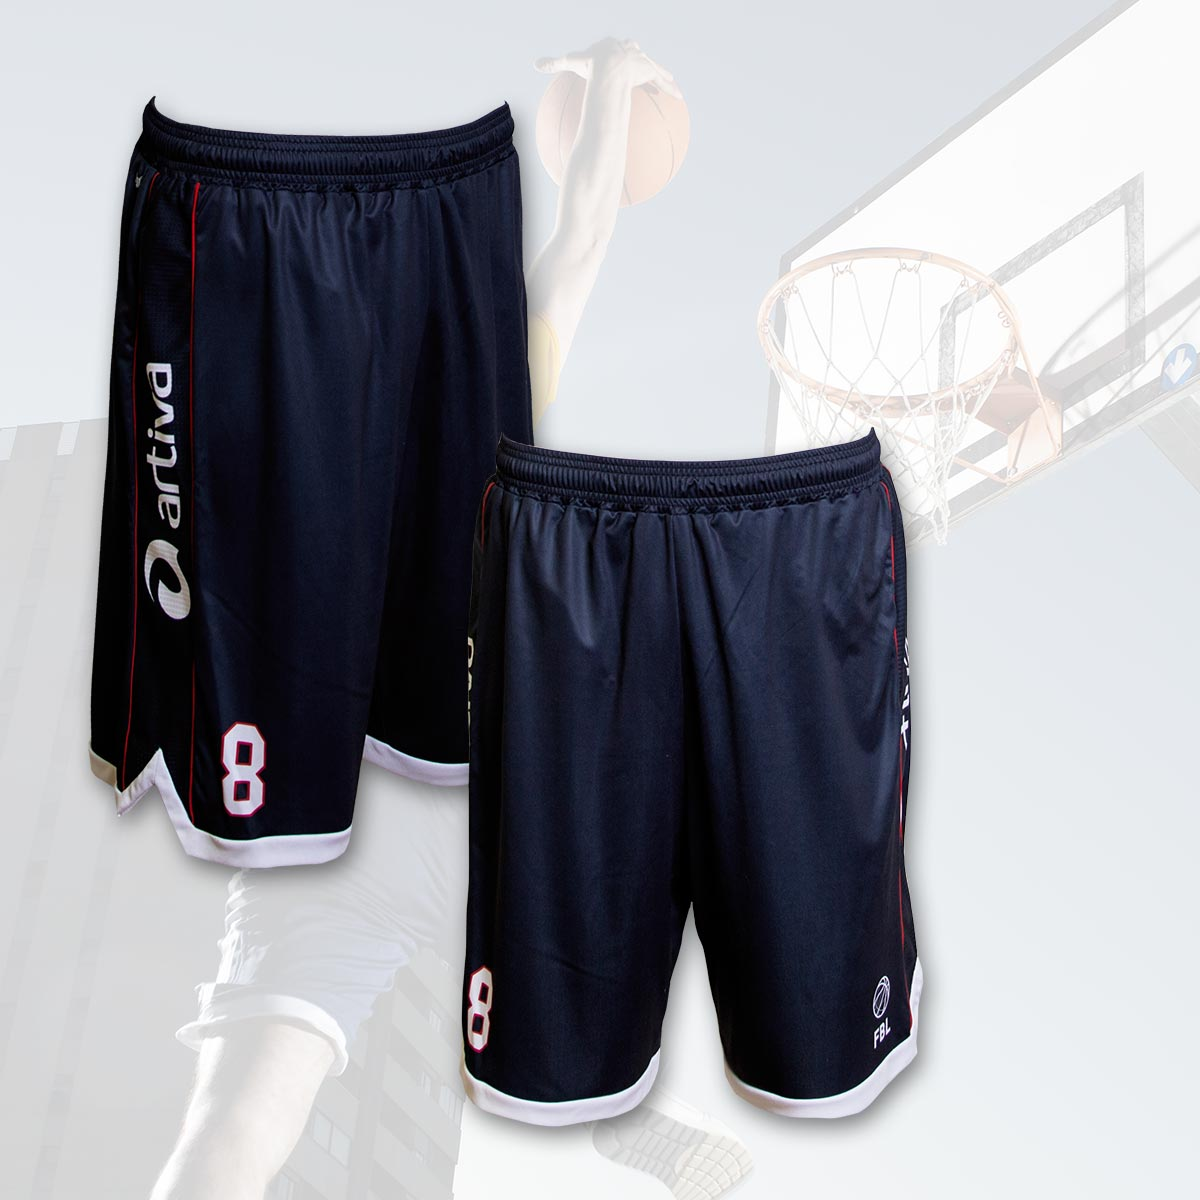 Custom basketball shorts